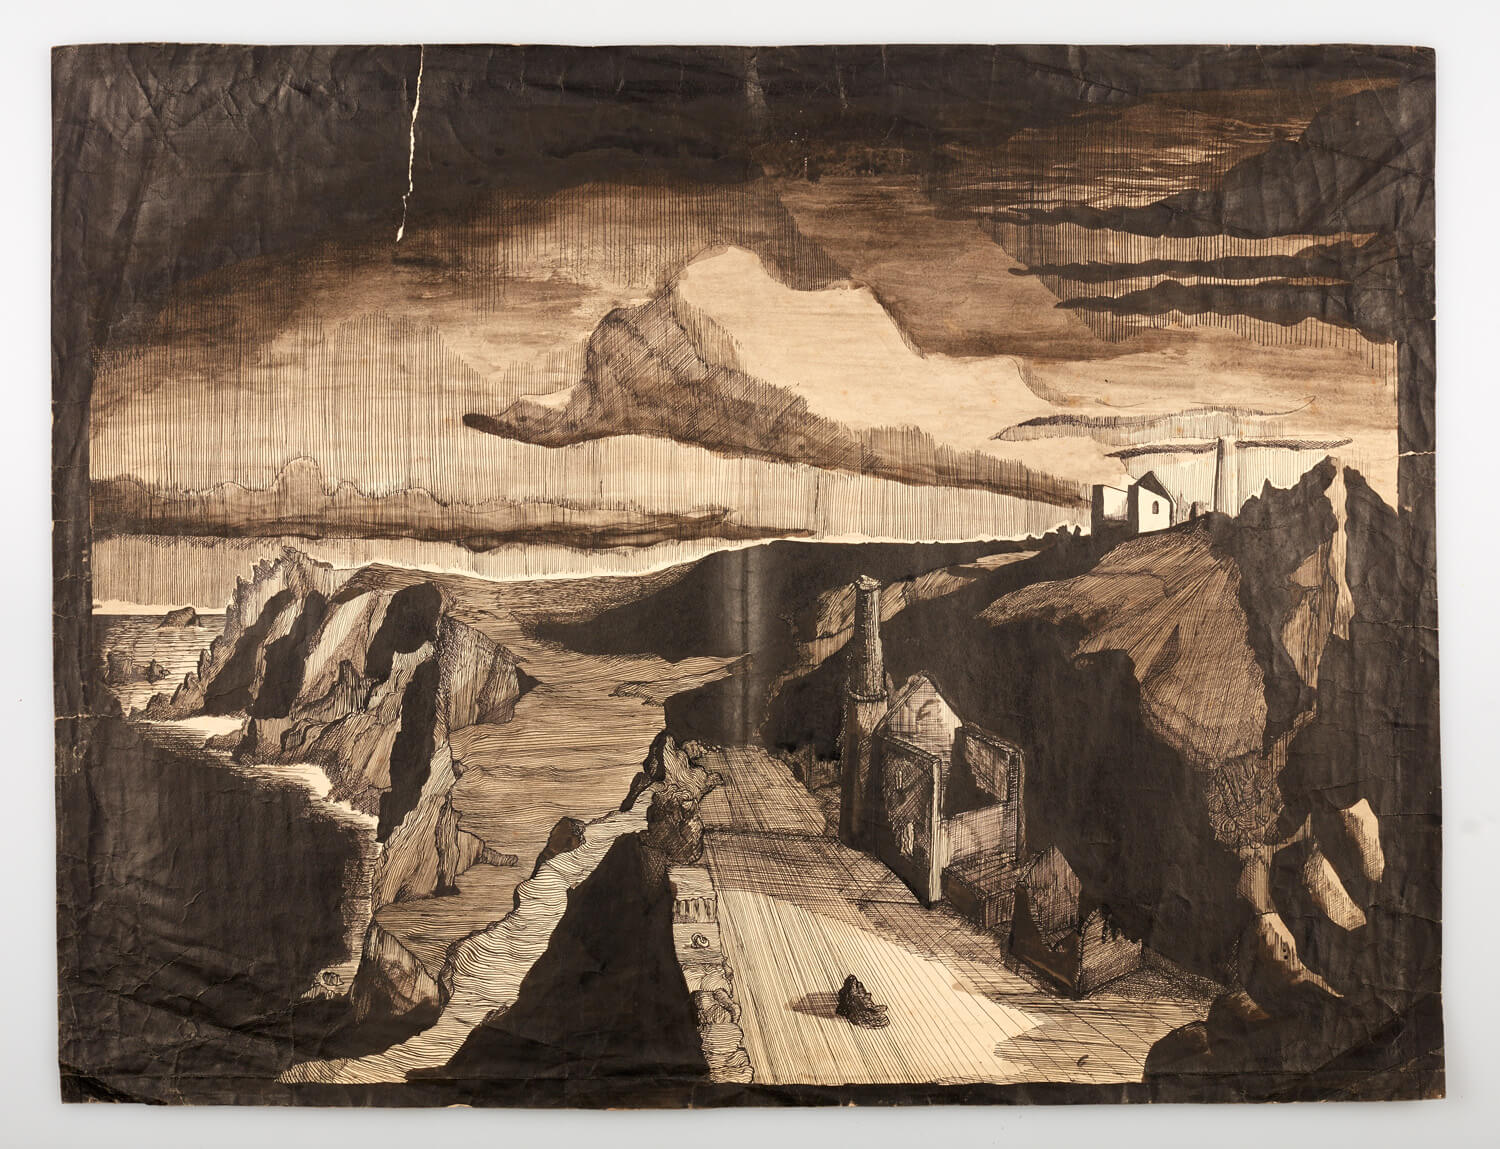 JB264 - Rocks and sea, Cornwall - 1946 - 51 x 68 cm - Pen and ink and wash